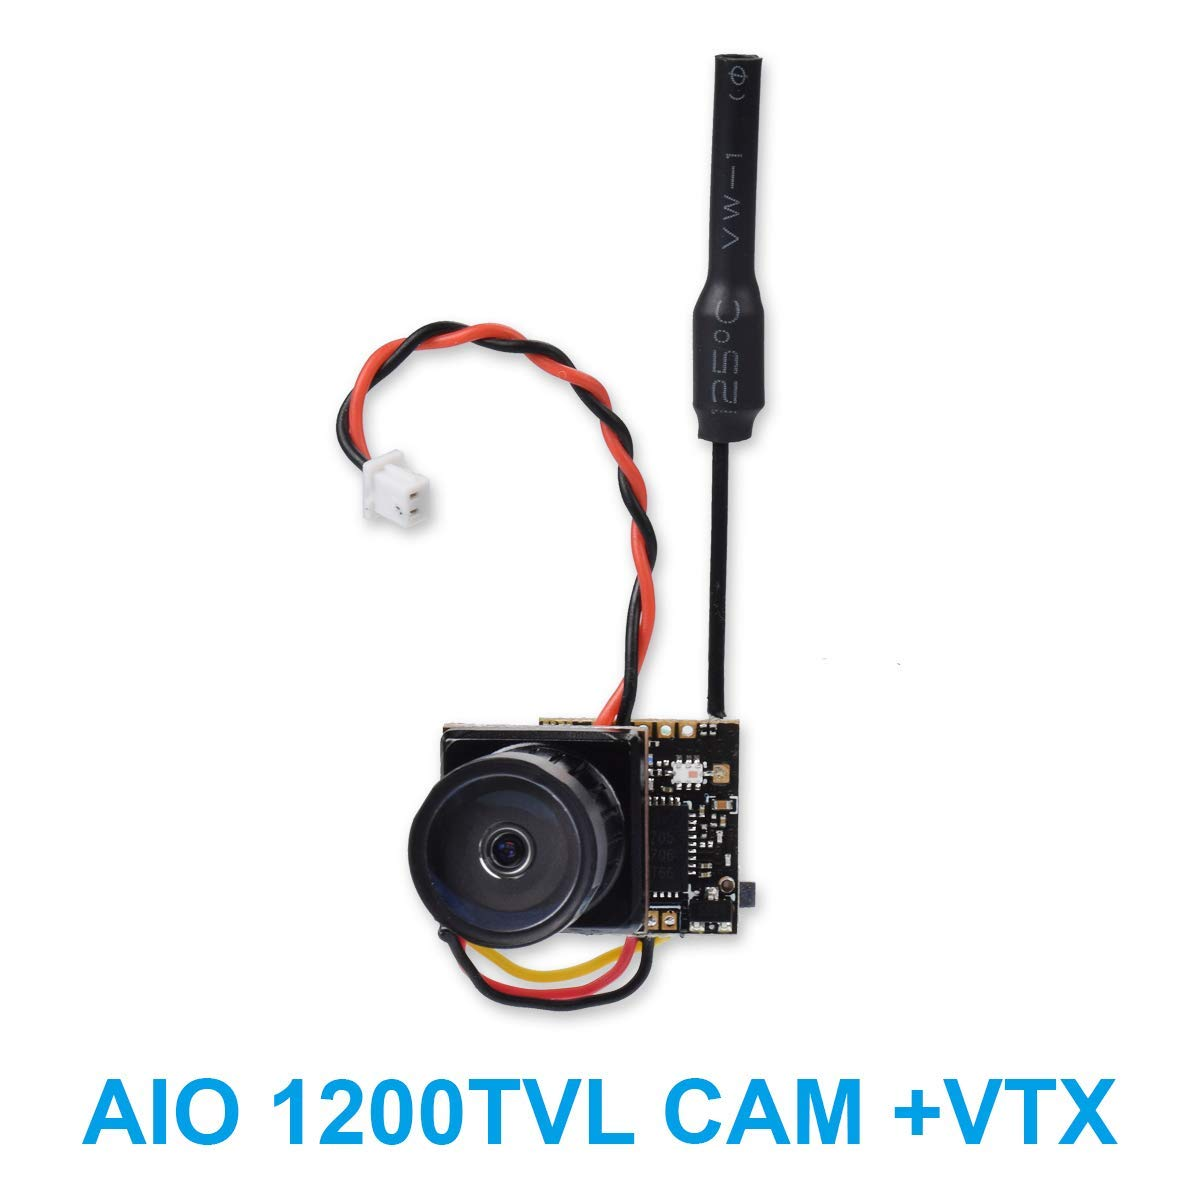 """BETAFPV 1200TVL FPV AIO Camera with OSD 25mW 48CH FPV Transmitter VTX 1/3"""" CMOS Sensor Support Smart Audio for Tiny Whoop Racing Drone"""